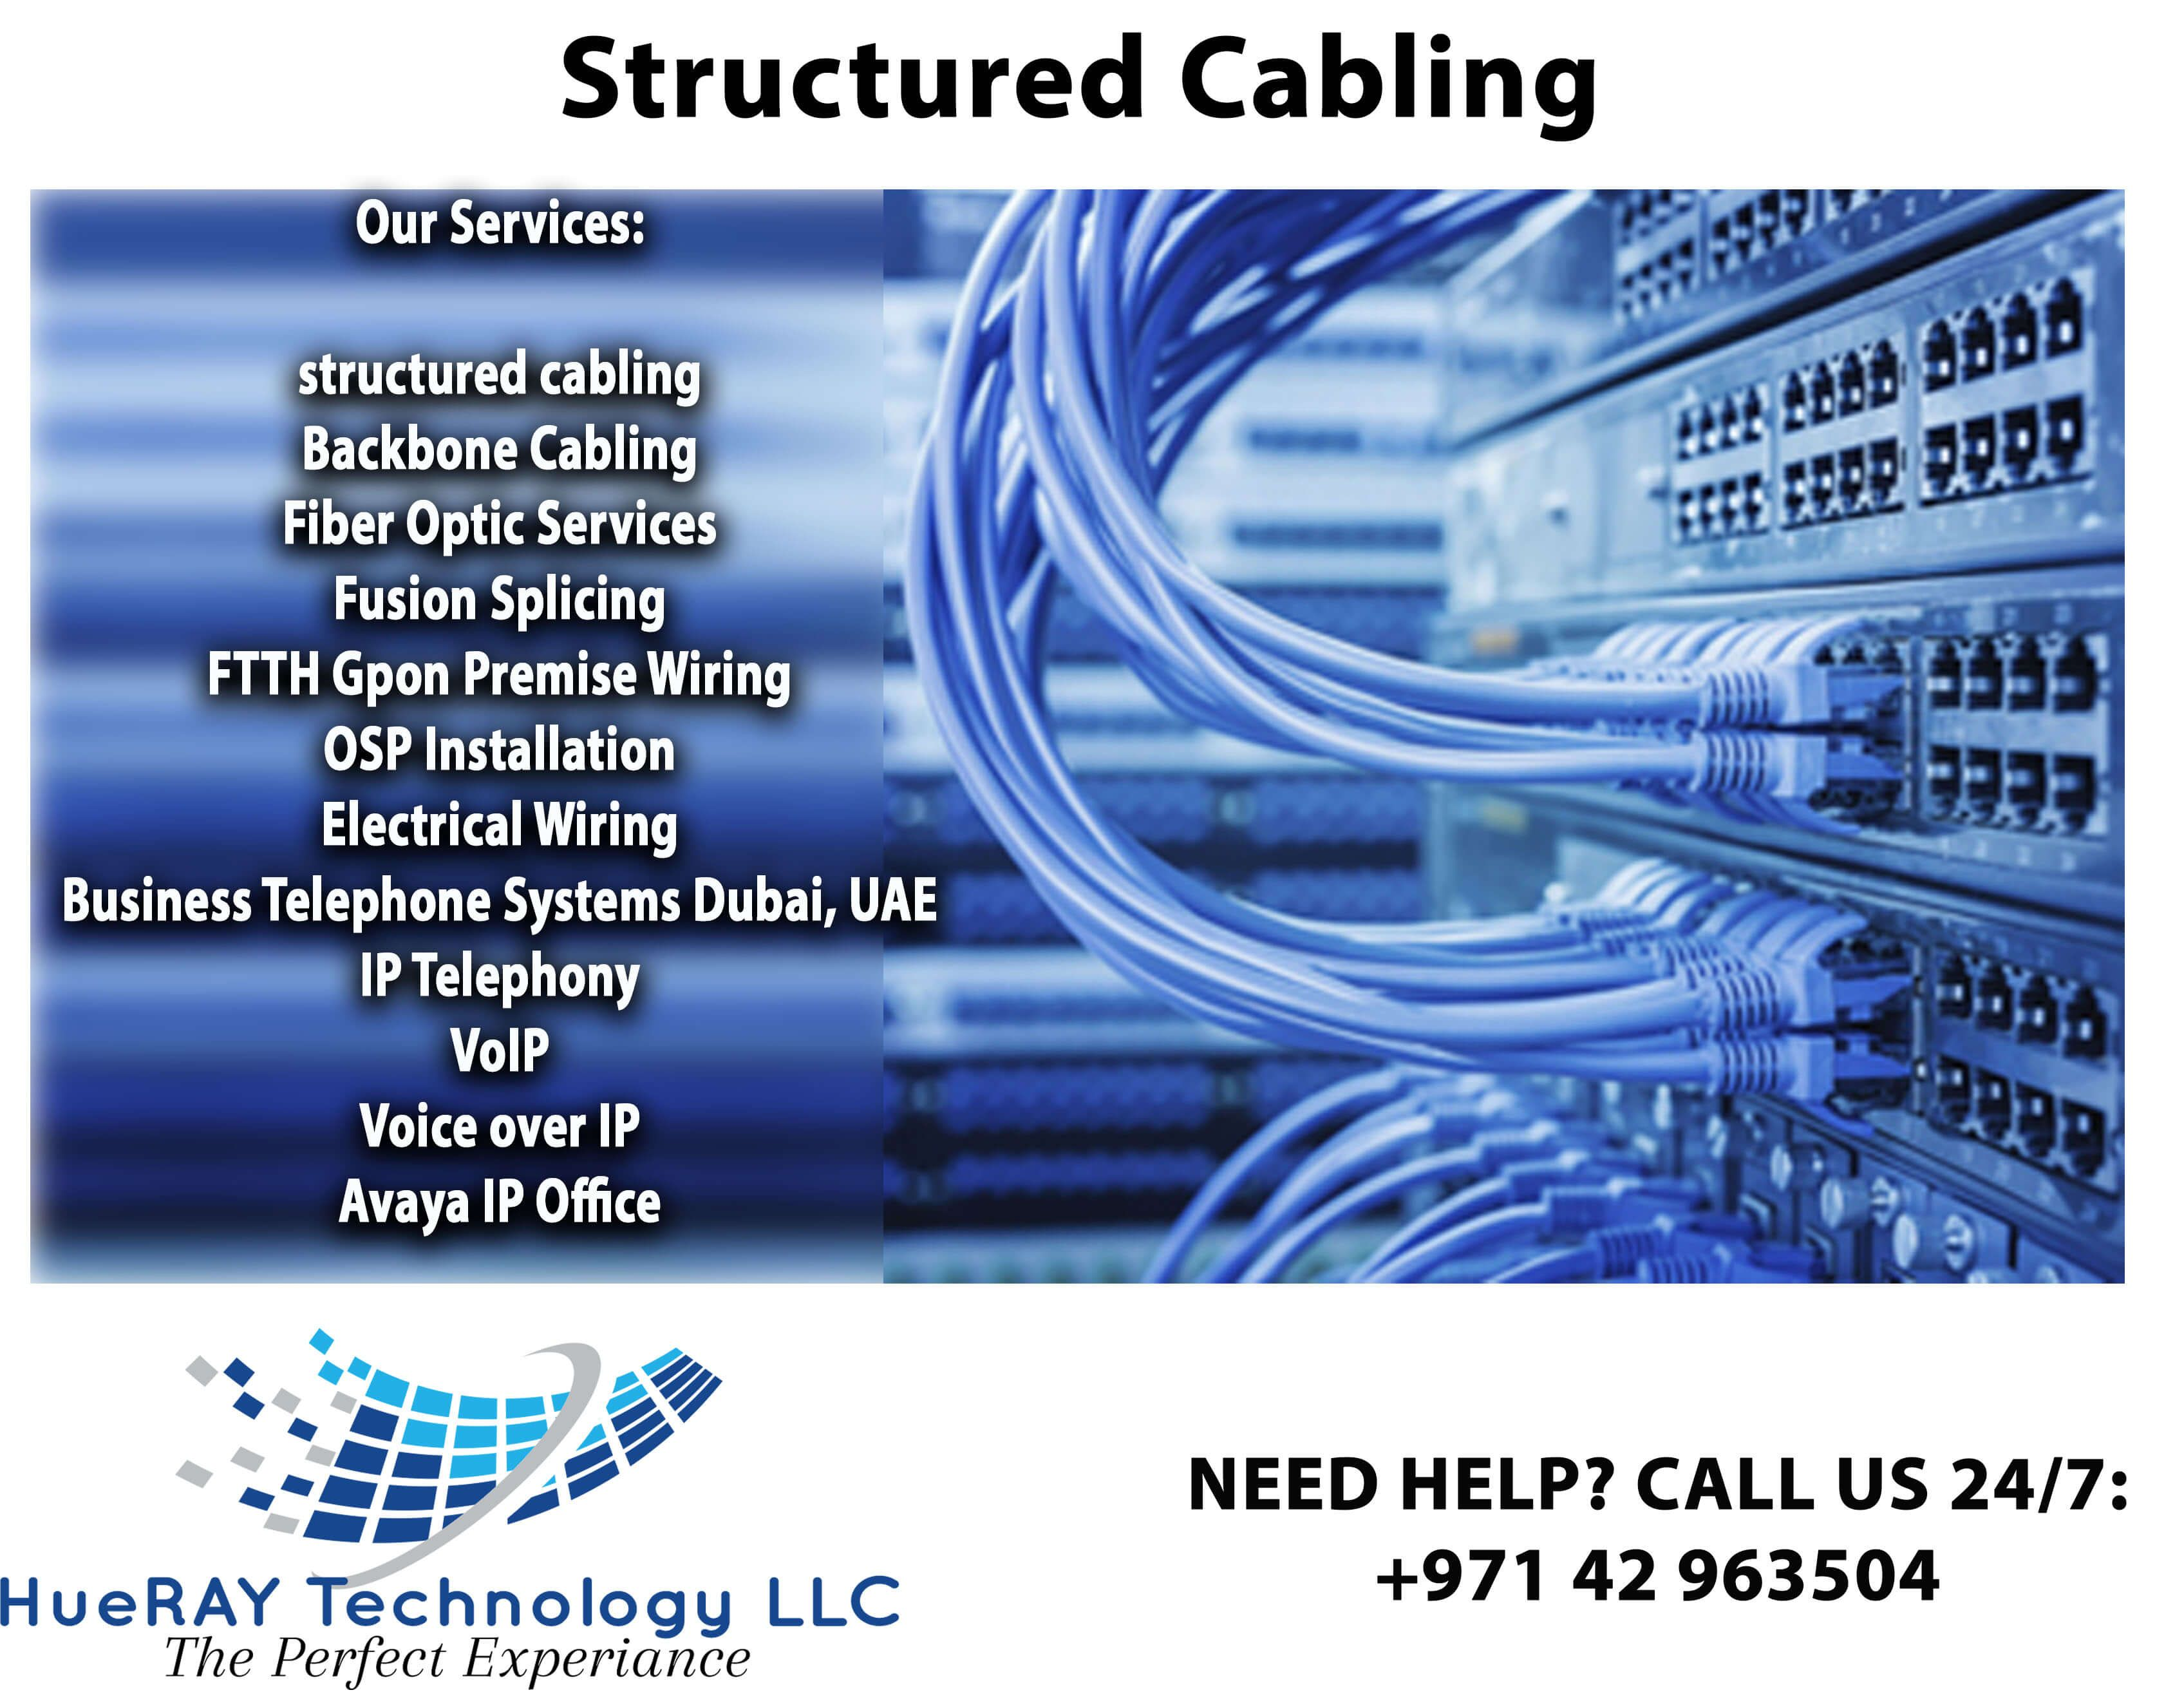 network cabling company dubaiHUERAY TECHNOLOGY LLC Cable